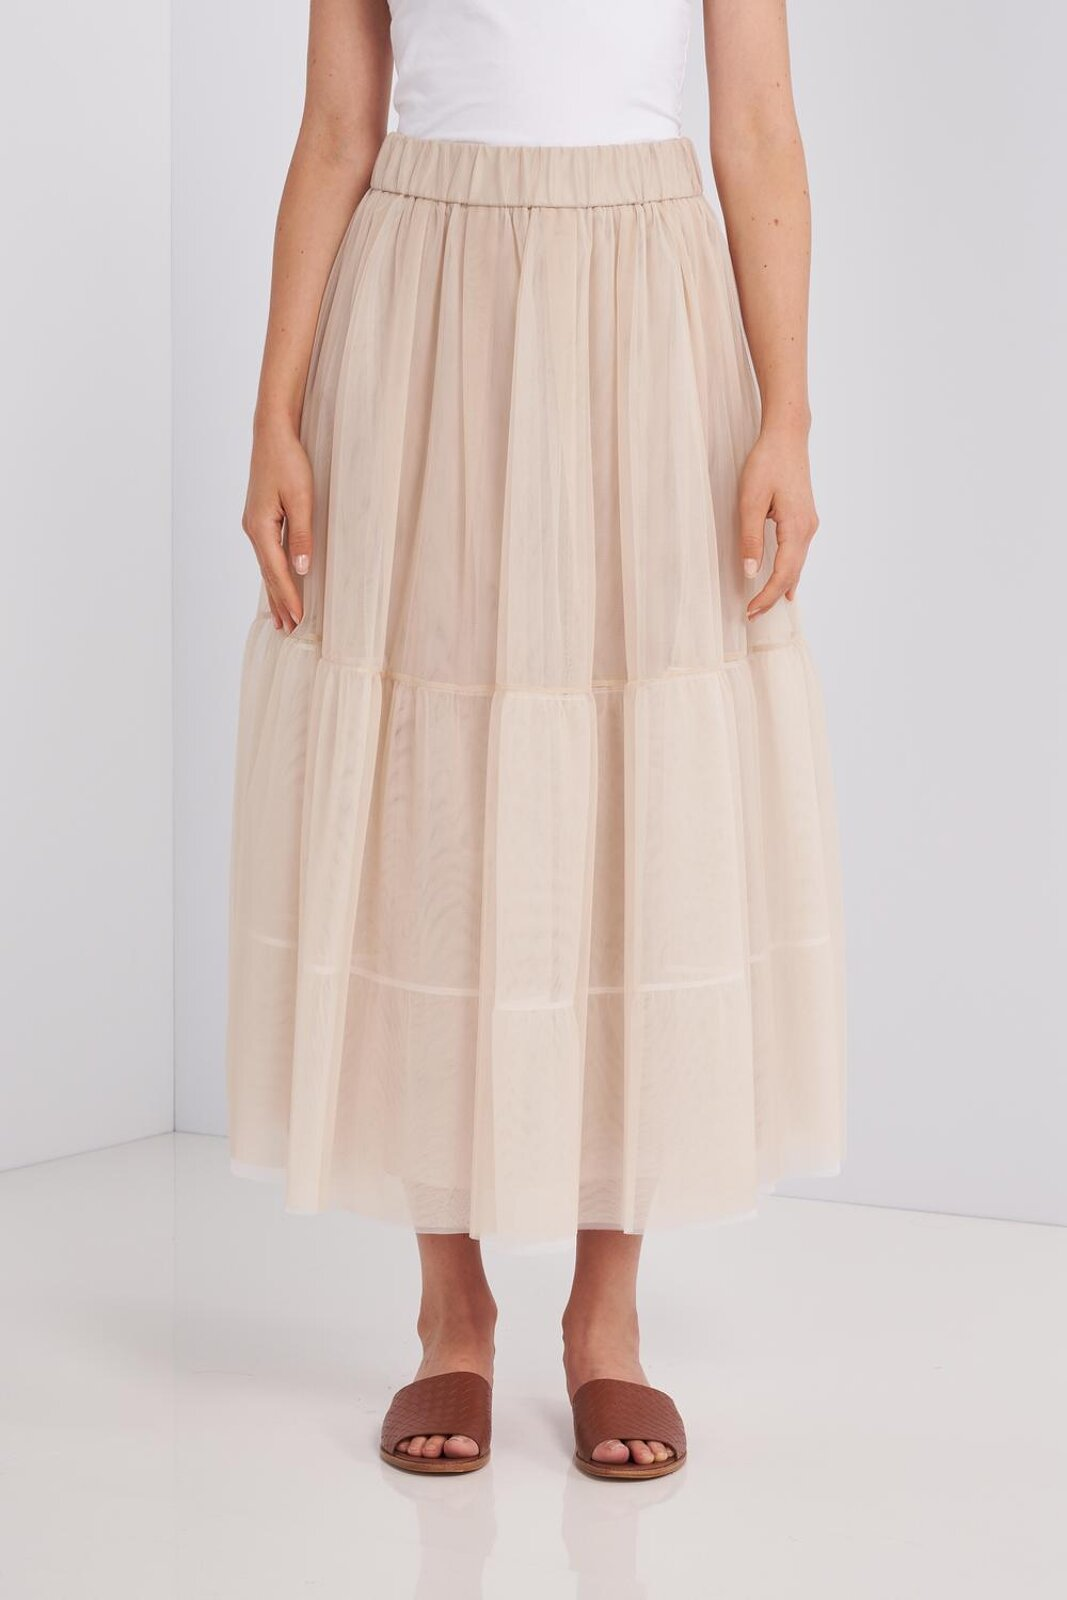 Long Two-tone Tulle Skirt With Elastic Waist. Underskirt To Create Volume, Loose Fit. - Peserico